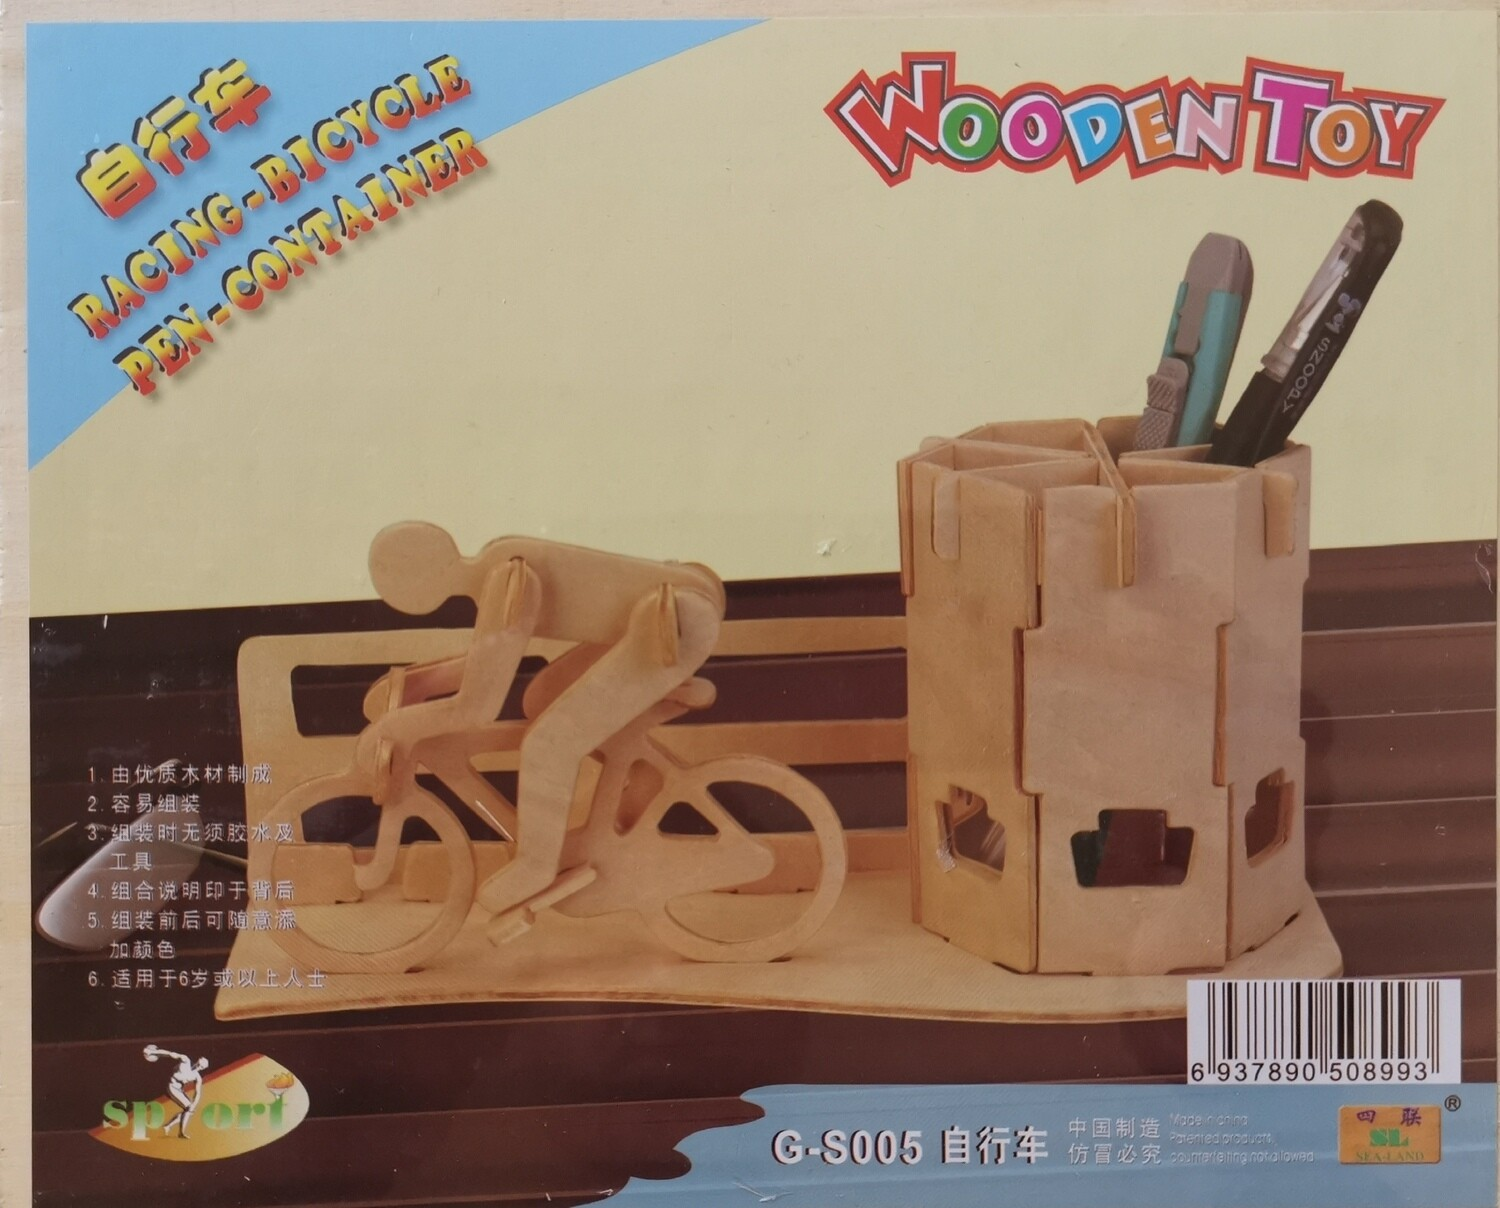 DIY 3D Wooden Puzzle Building Kit - Ricing Bicycle Pen Container (2H Sheets)